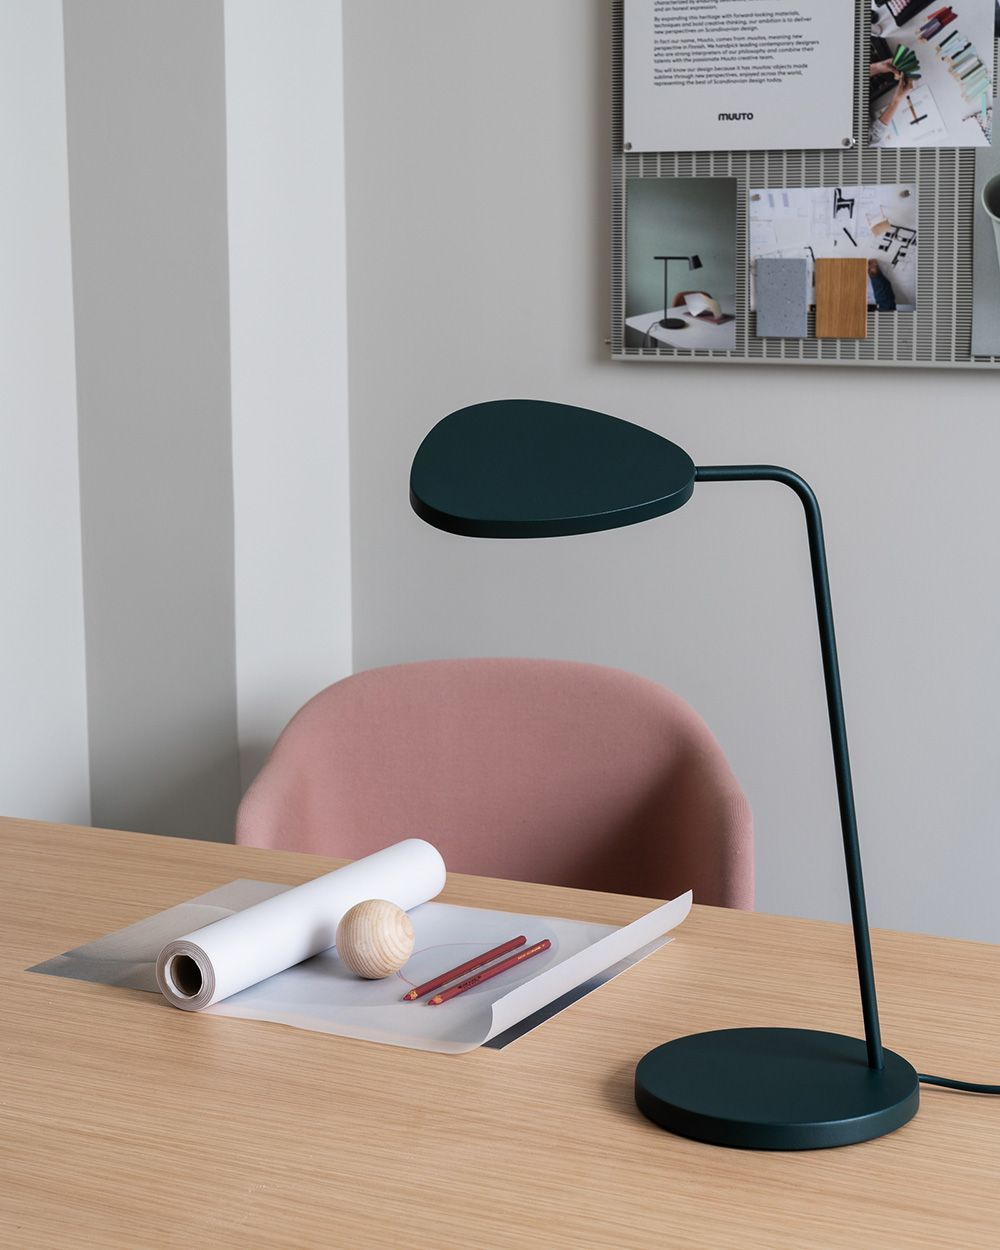 Scandinavian Lighting Inspiration From Muuto A Sleek And Contemporary Addition To Any Home O In 2020 Scandinavian Furniture Design Leaf Table Office Space Inspiration